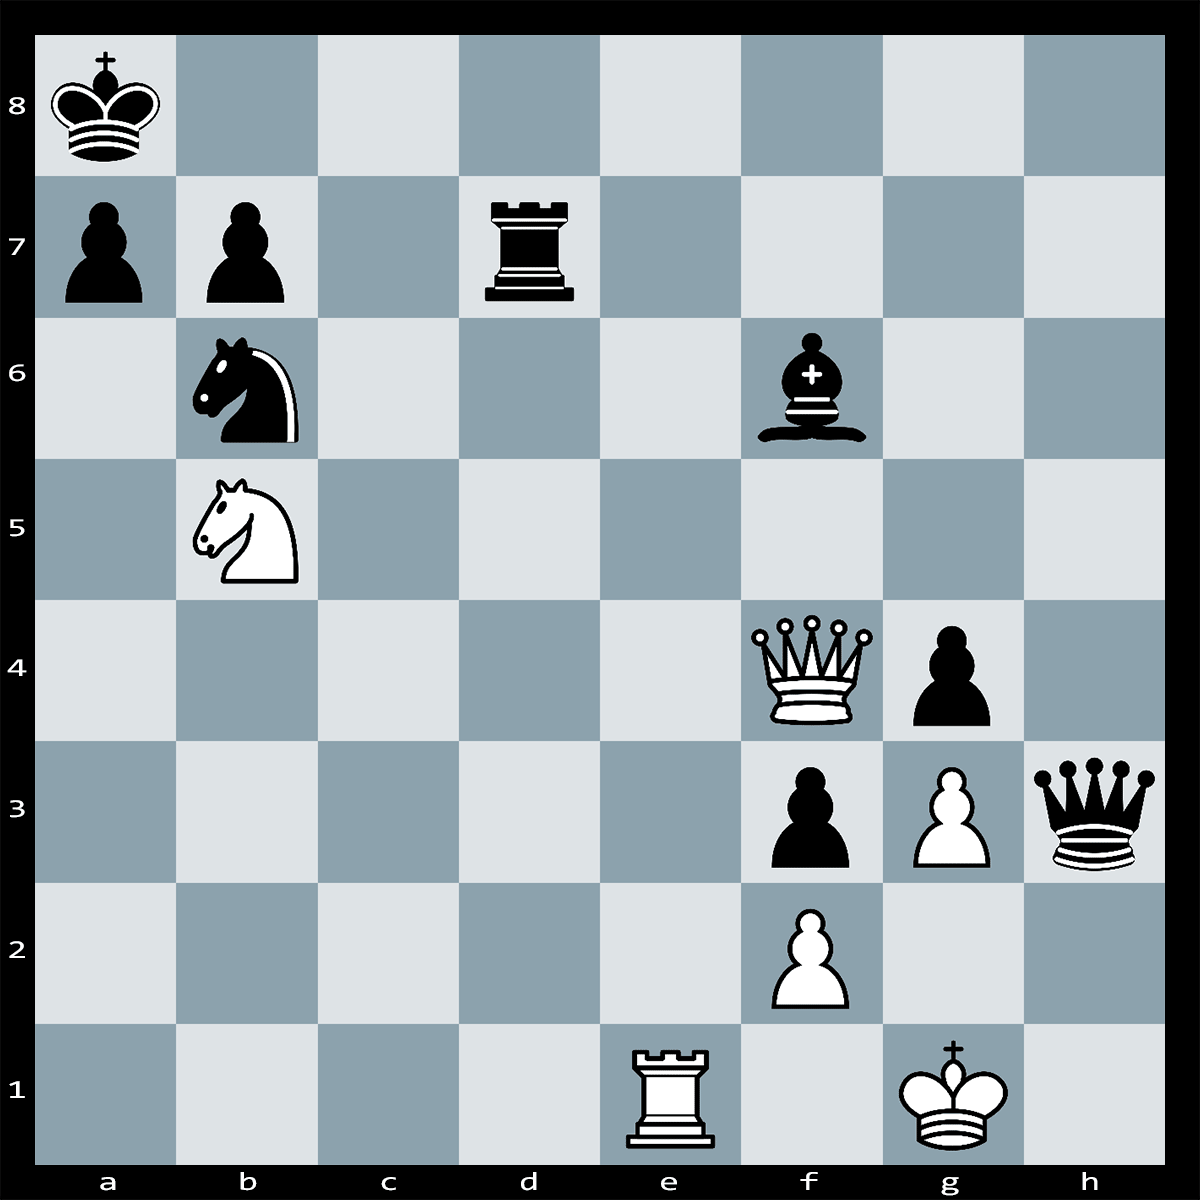 Mate in 6 Moves, White to Play | Chess Puzzle #182